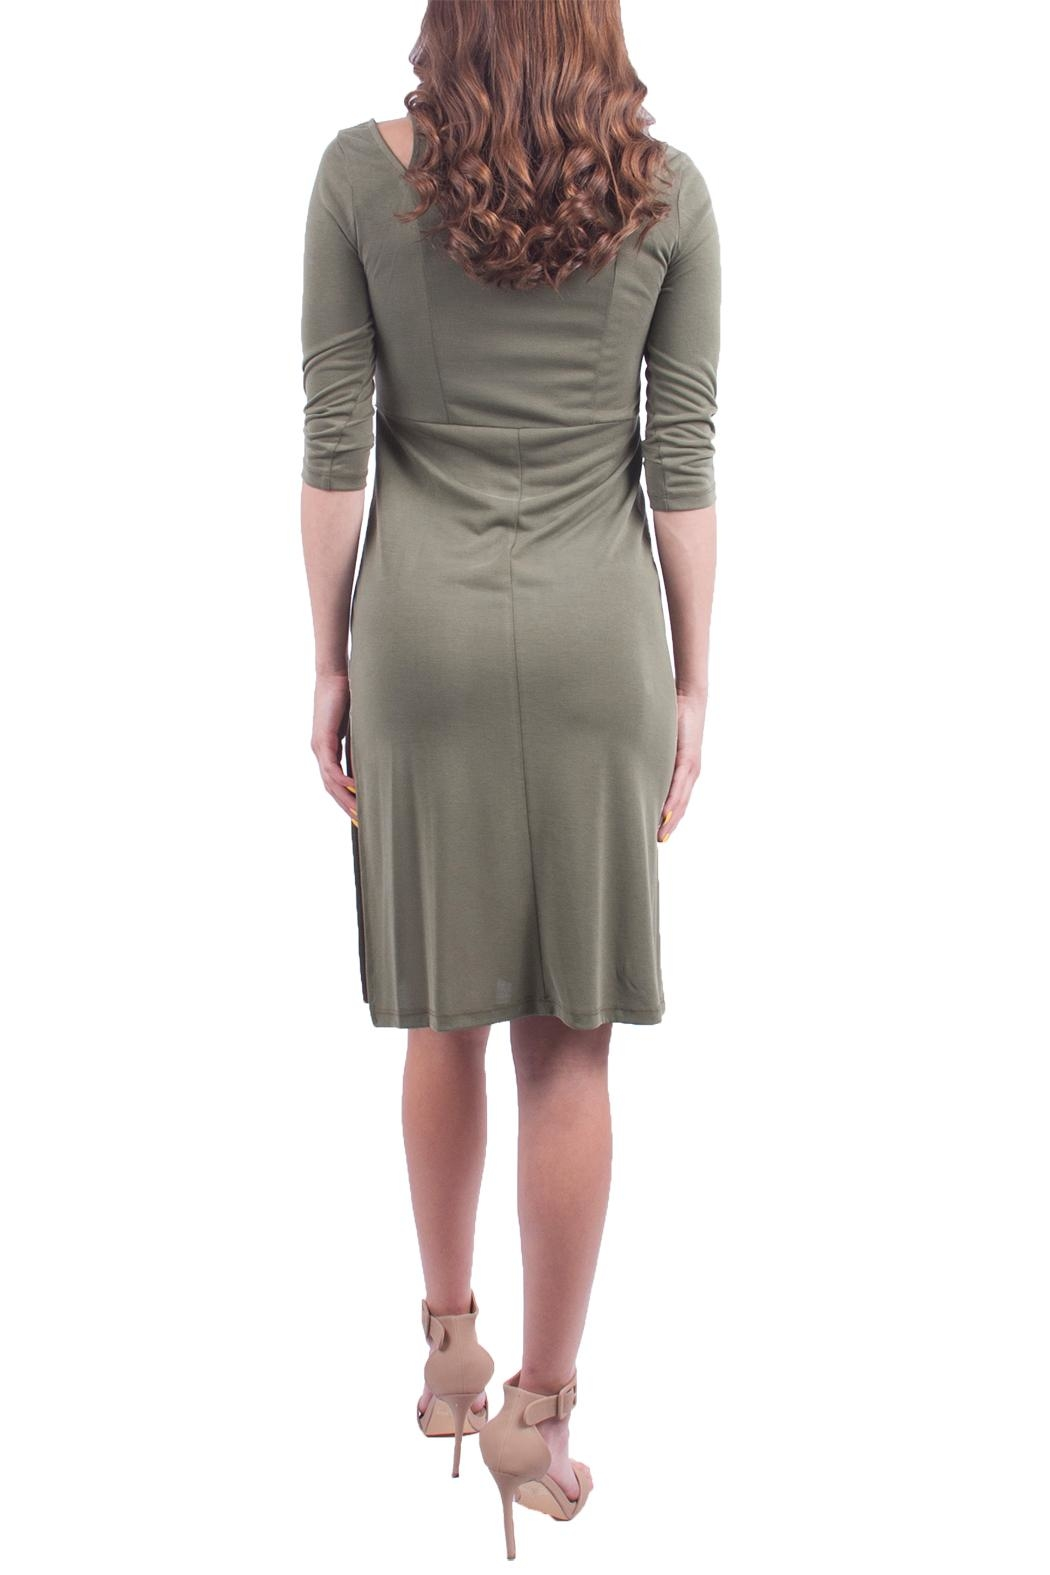 Everly Olive Shoulder Dress - Side Cropped Image